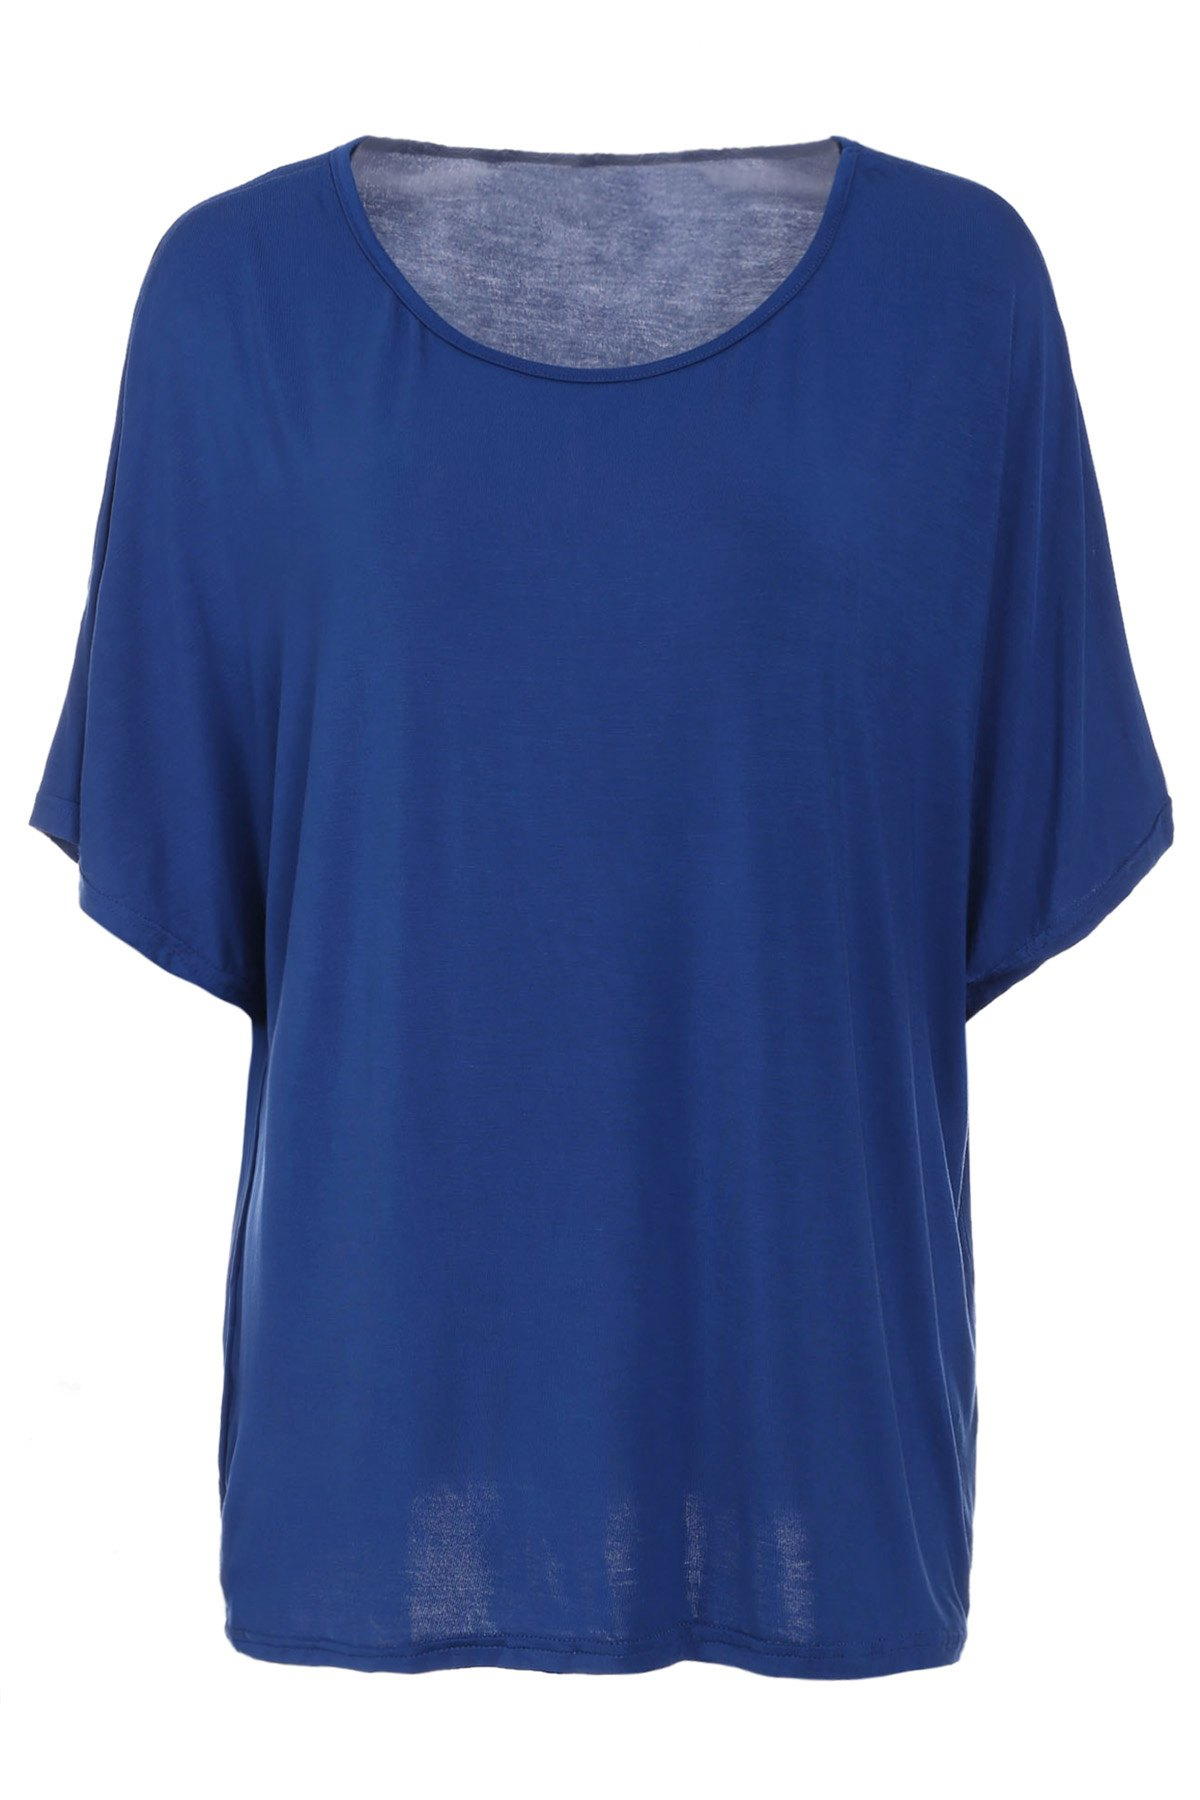 Trendy Batwing Sleeve Scoop Neck Loose-Fitting Solid Color Women's T-Shirt - CADETBLUE L